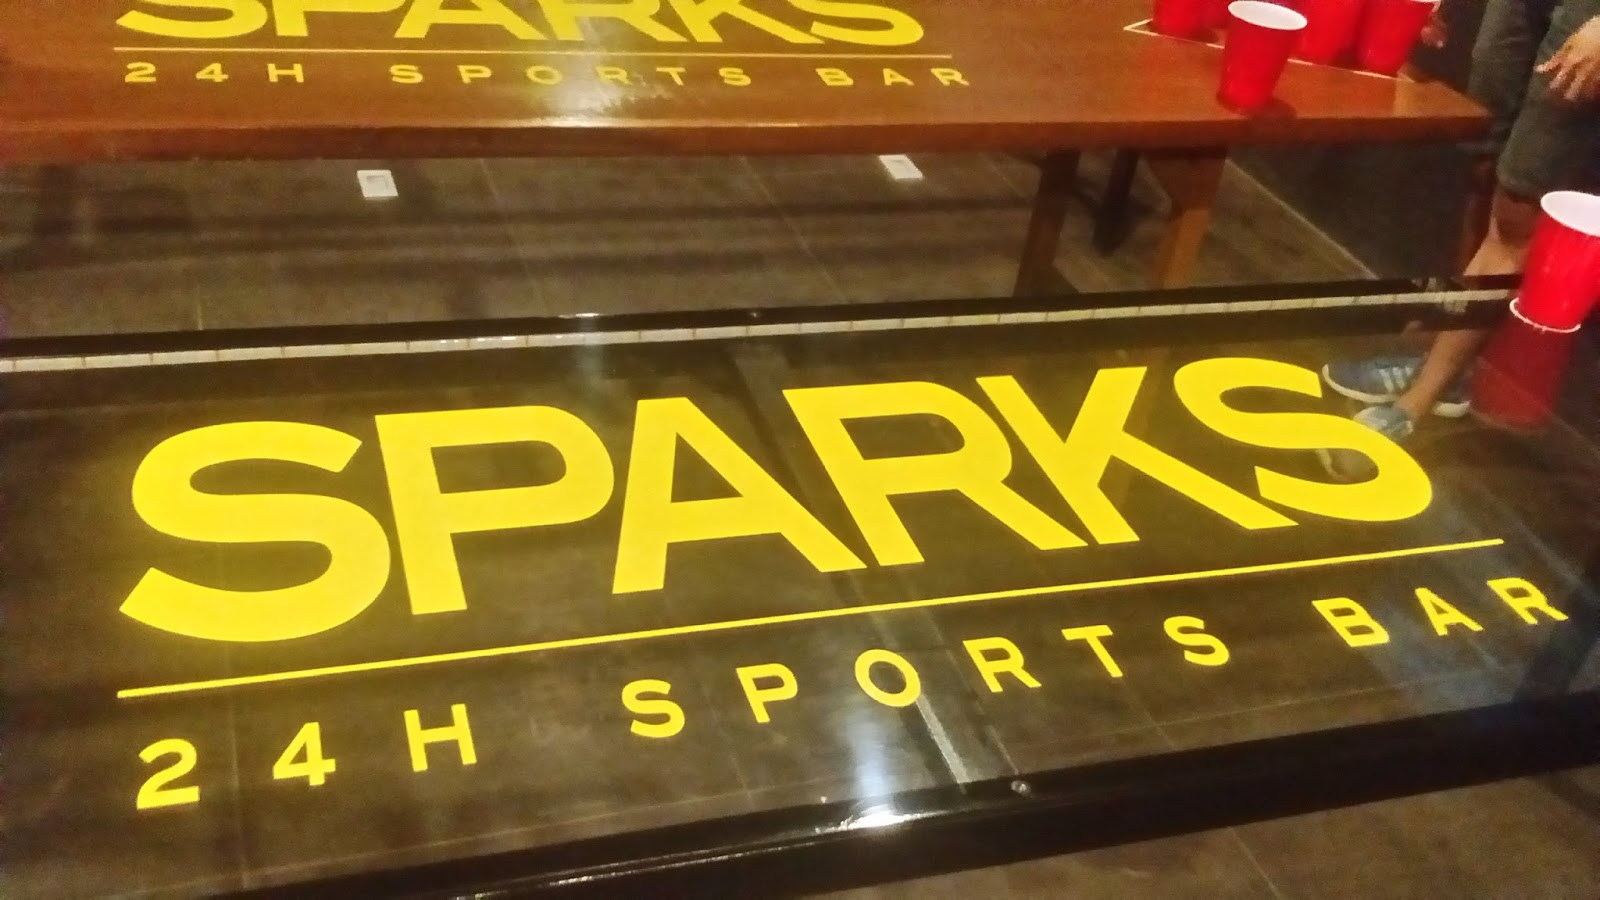 Sparks Malate Club & Sports Bar